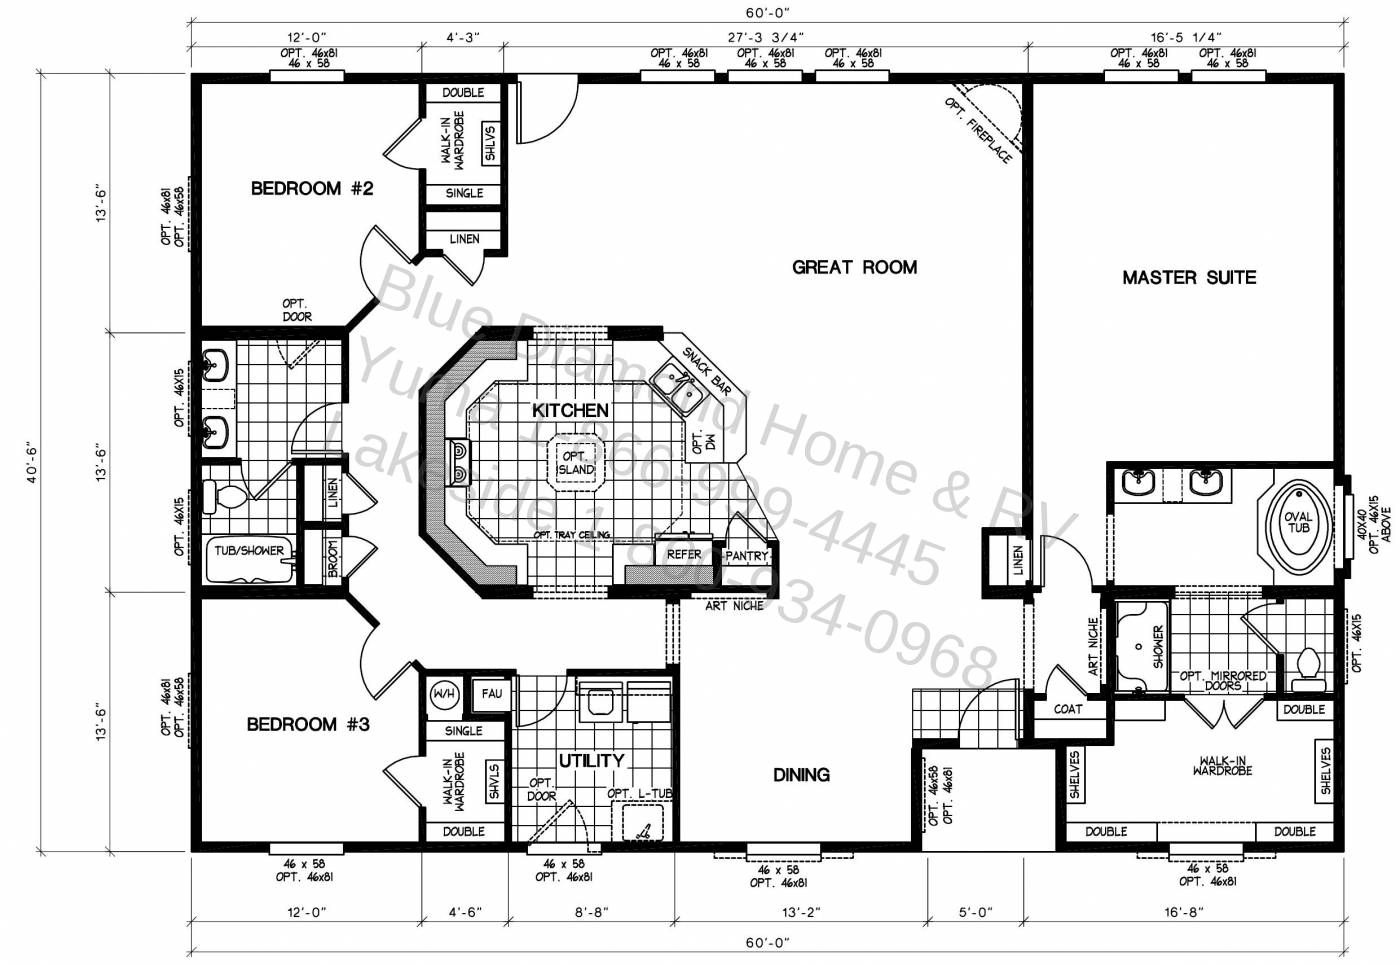 fcd9d799c4fb7d4771557837988e4d56 destiny homes floor plans additional mobile home floor plans and Single Wide Mobile Home Plumbing Diagram at bayanpartner.co